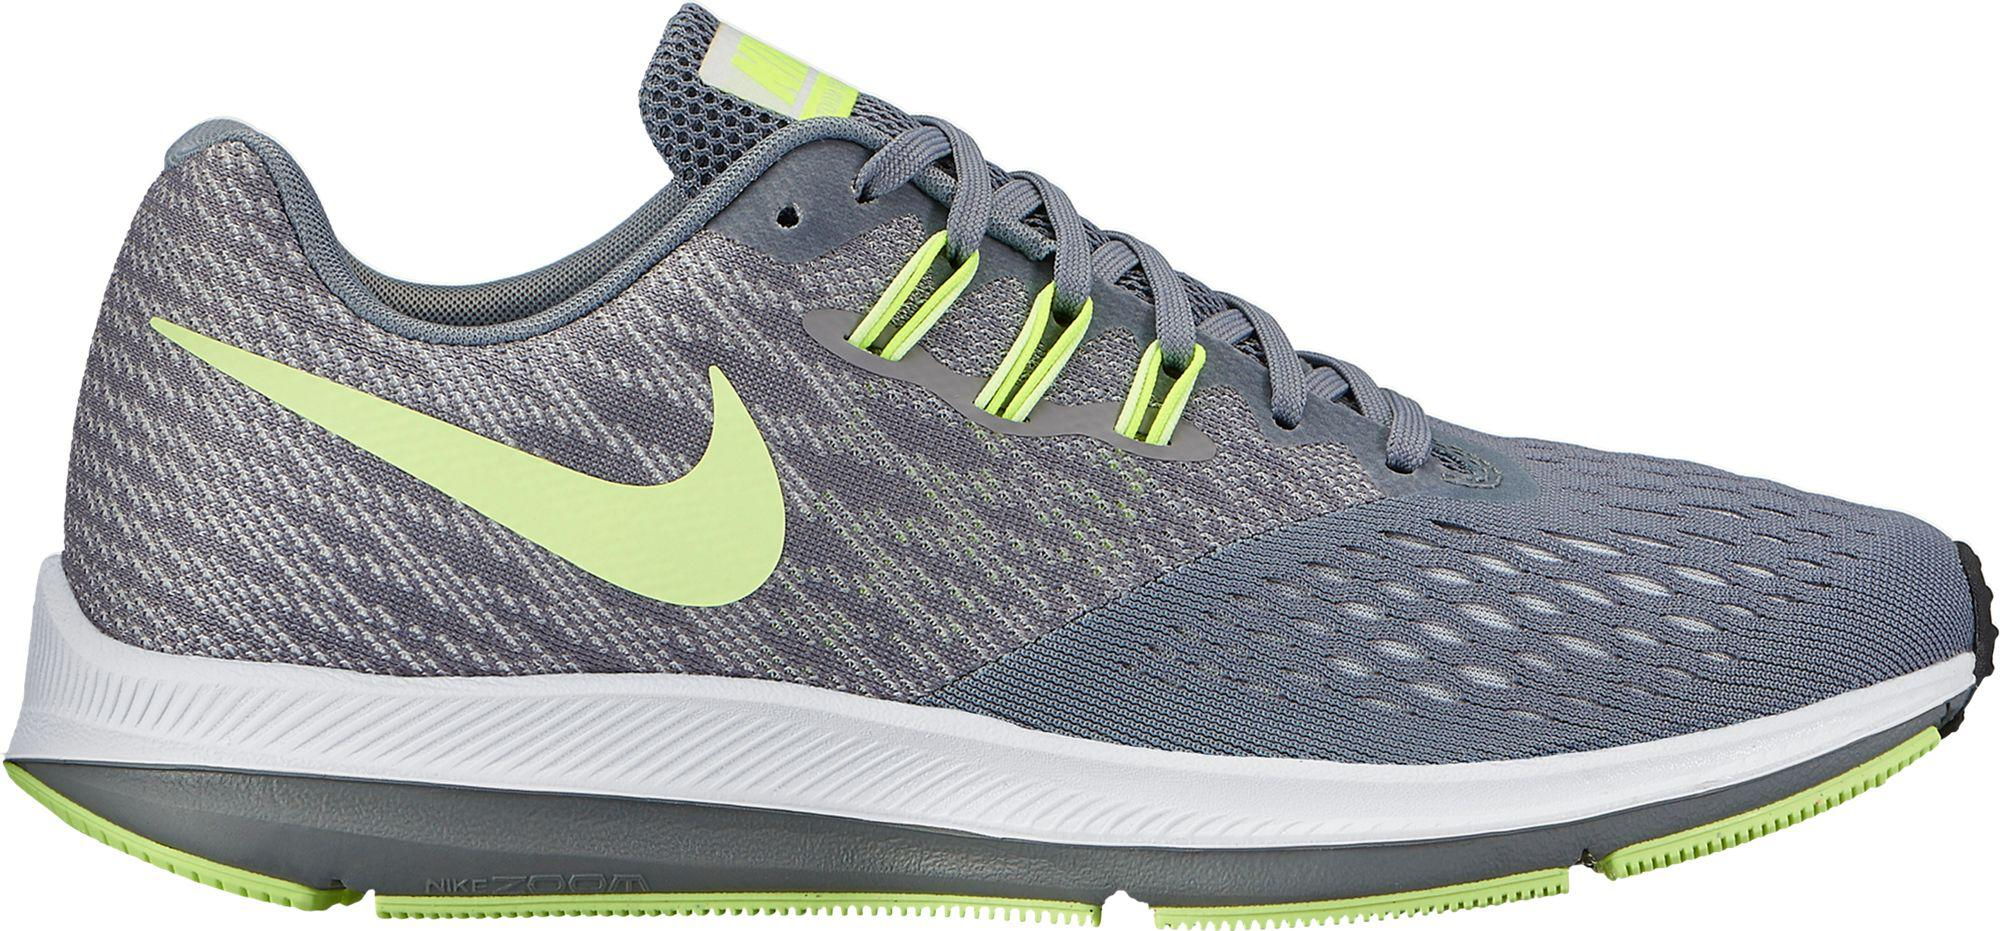 b0db075ab15 Lyst - Nike Air Zoom Winflo 4 Running Shoes in Gray for Men